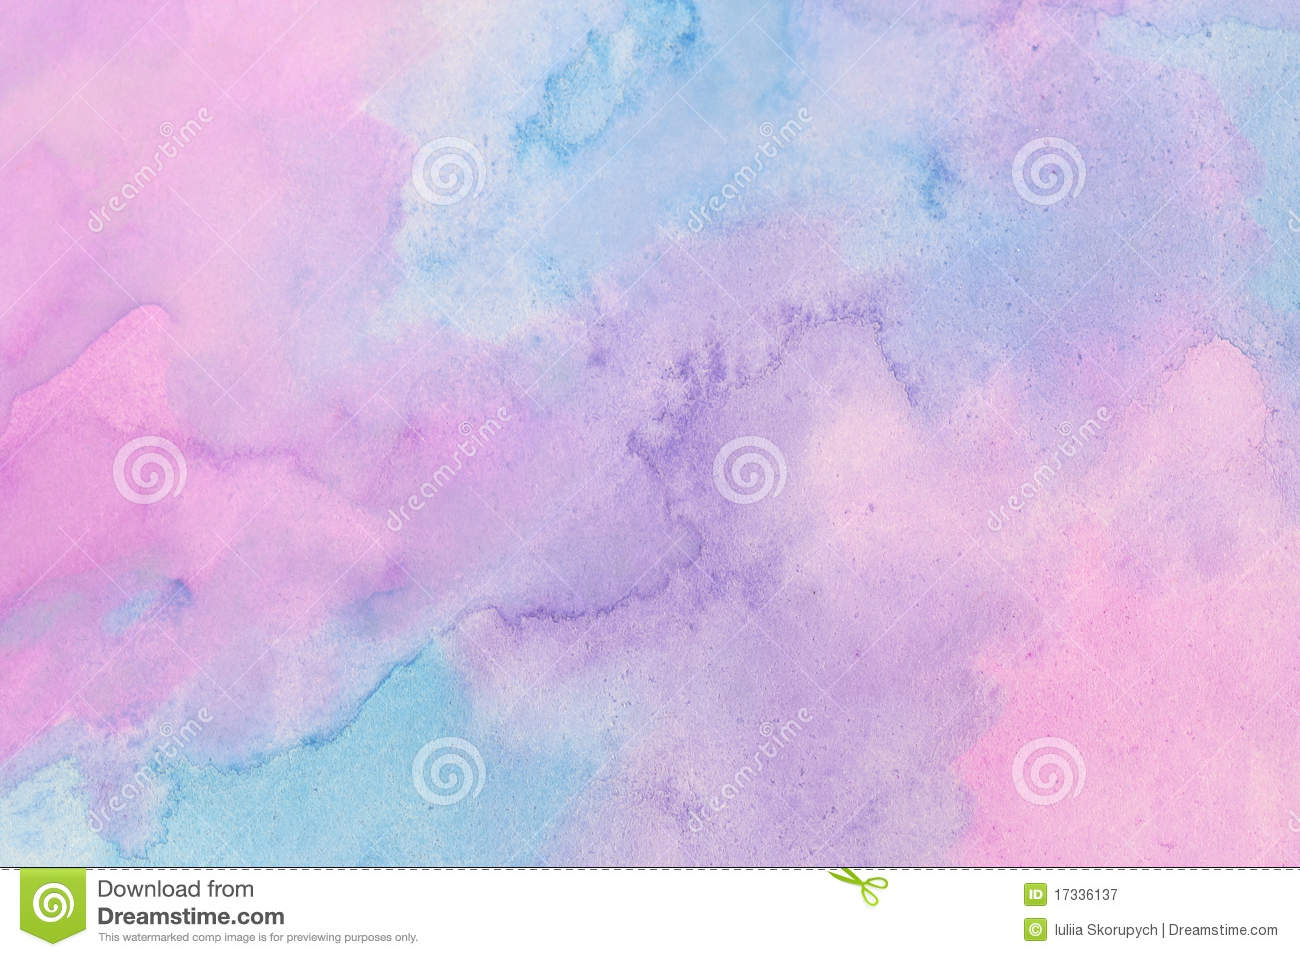 Watercolor Background Royalty Free Stock Photography - Image: 17336137